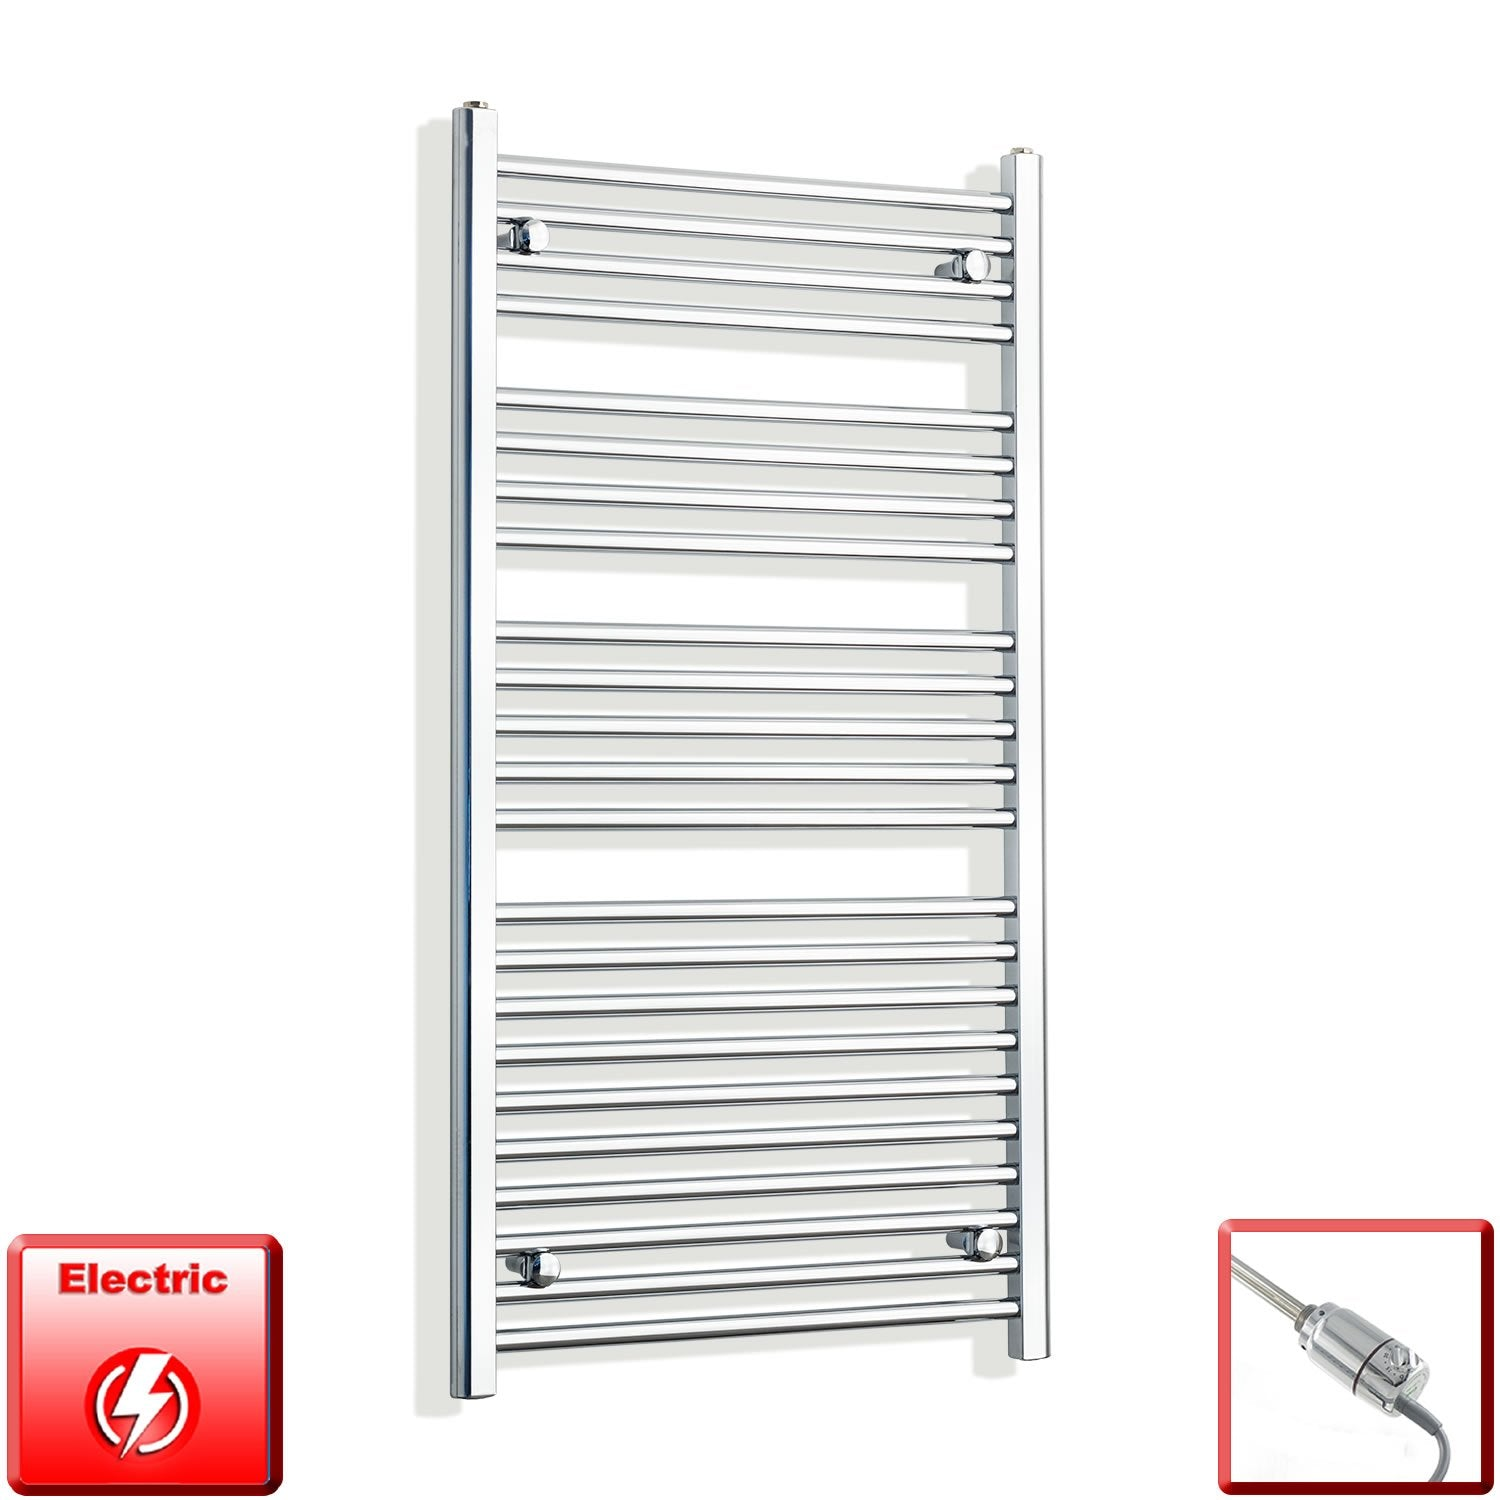 650mm Wide 1200mm High Flat Chrome Pre-Filled Electric Heated Towel Rail Radiator HTR,GT Thermostatic